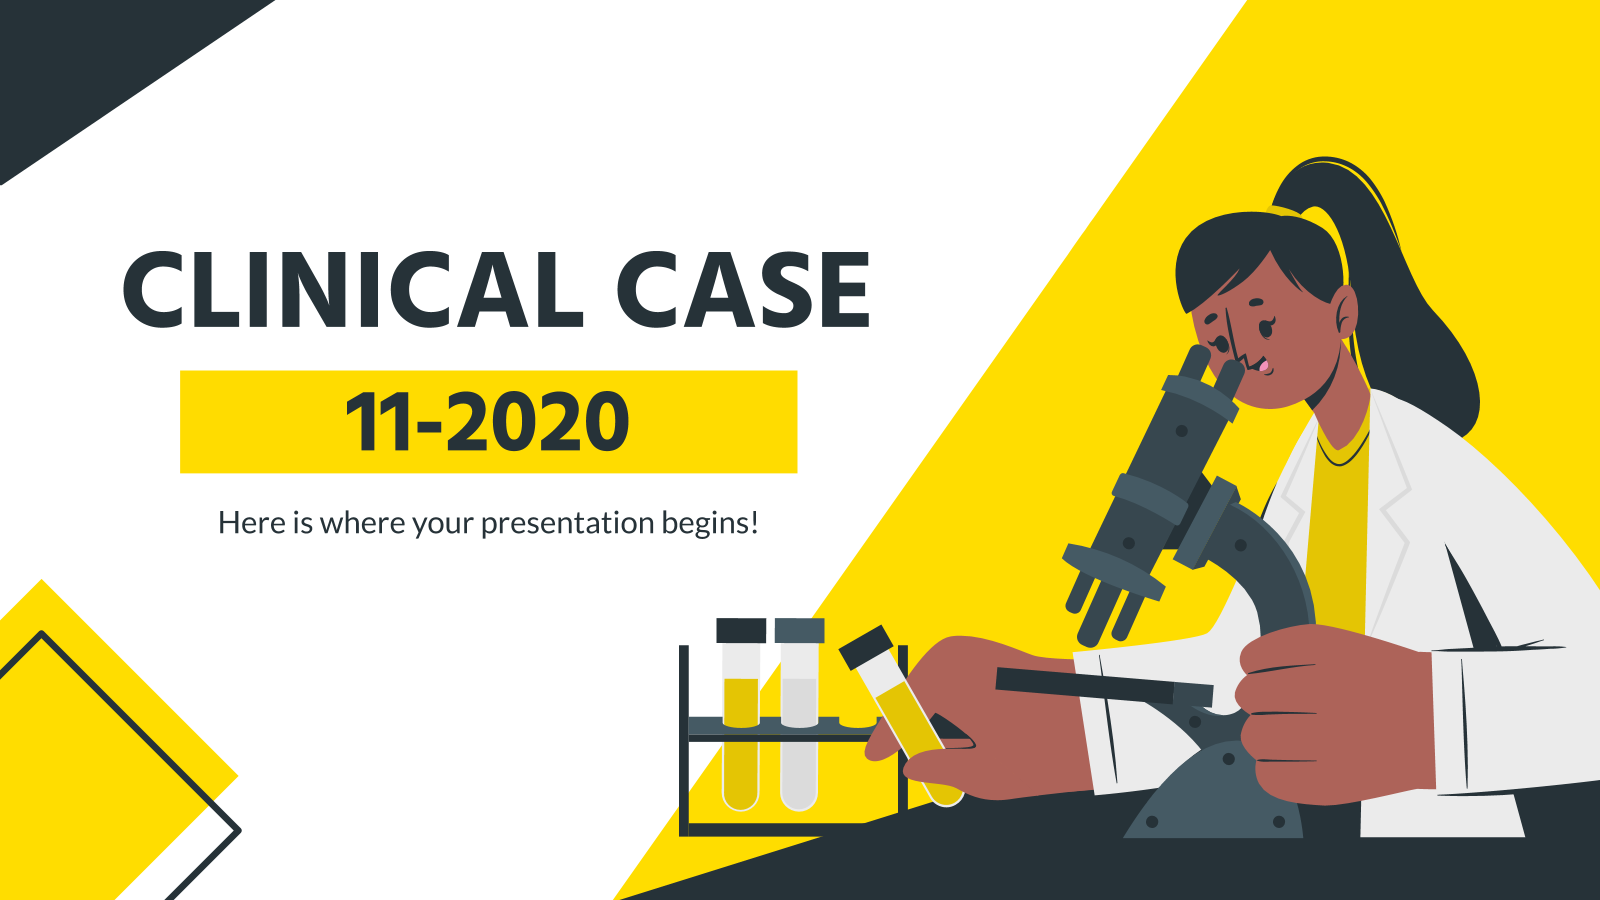 Clinical Case 11-2020 presentation template